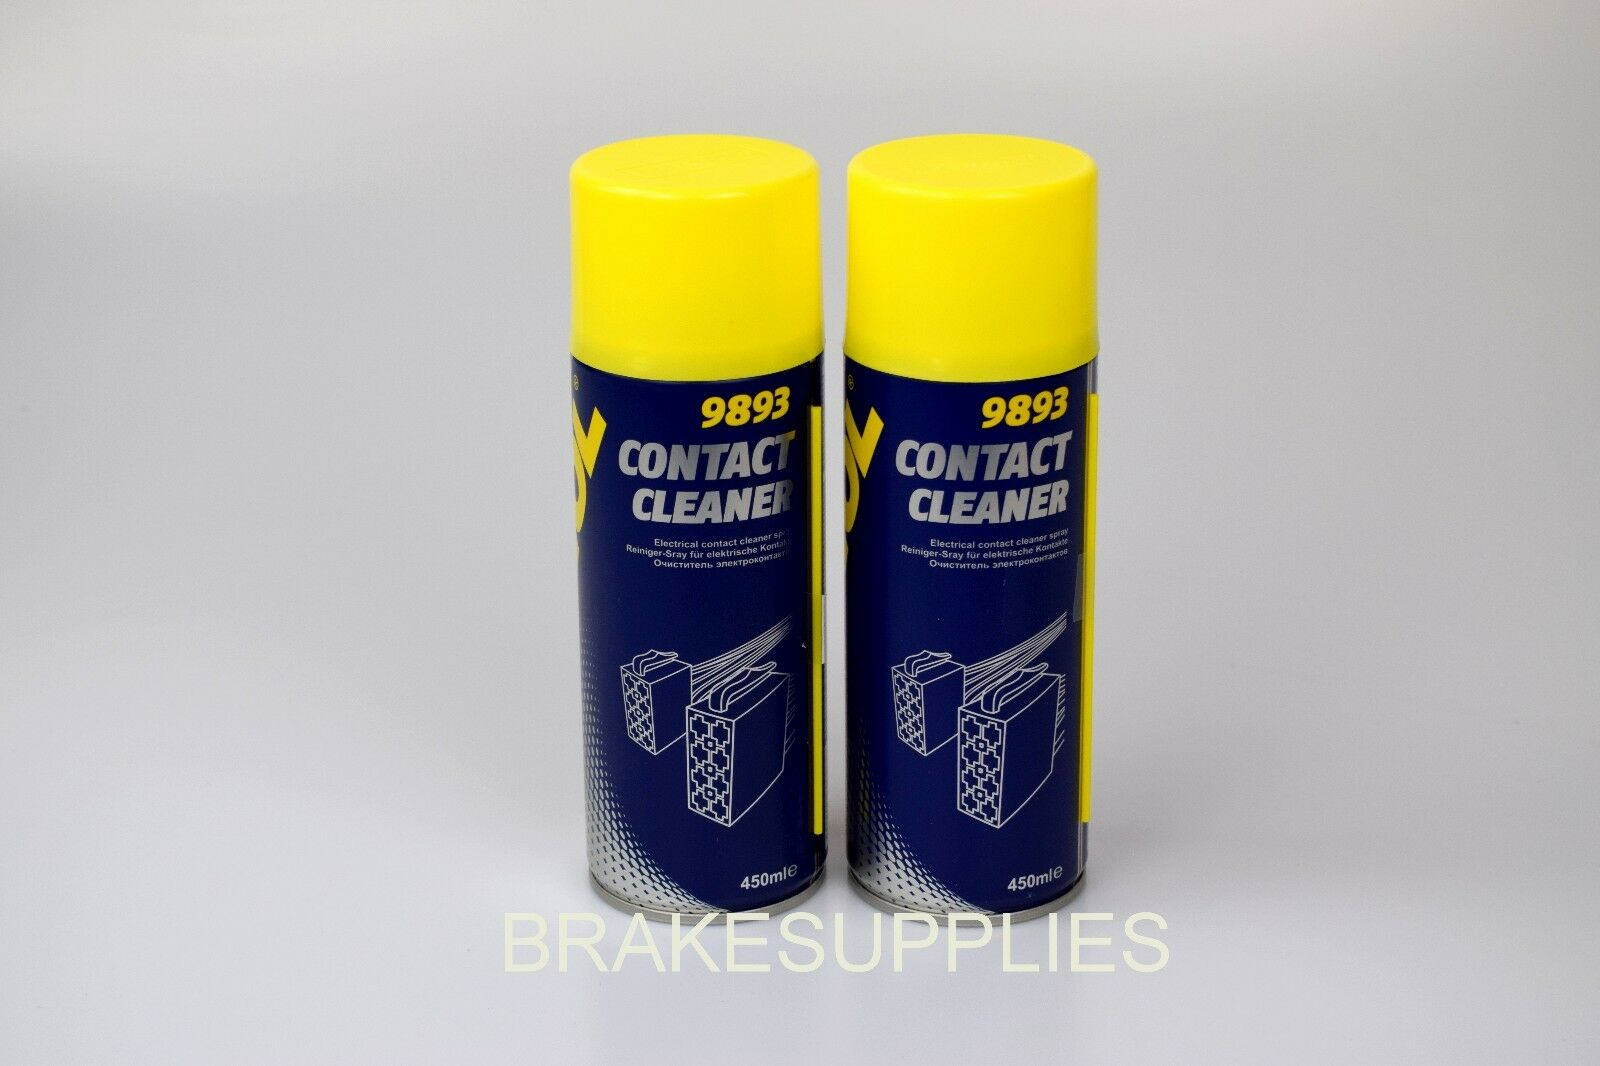 2 X Electrical Contact Cleaner Spray Aerosol 450ml Can German Hi And Circuit Board 1 Of 1free Shipping